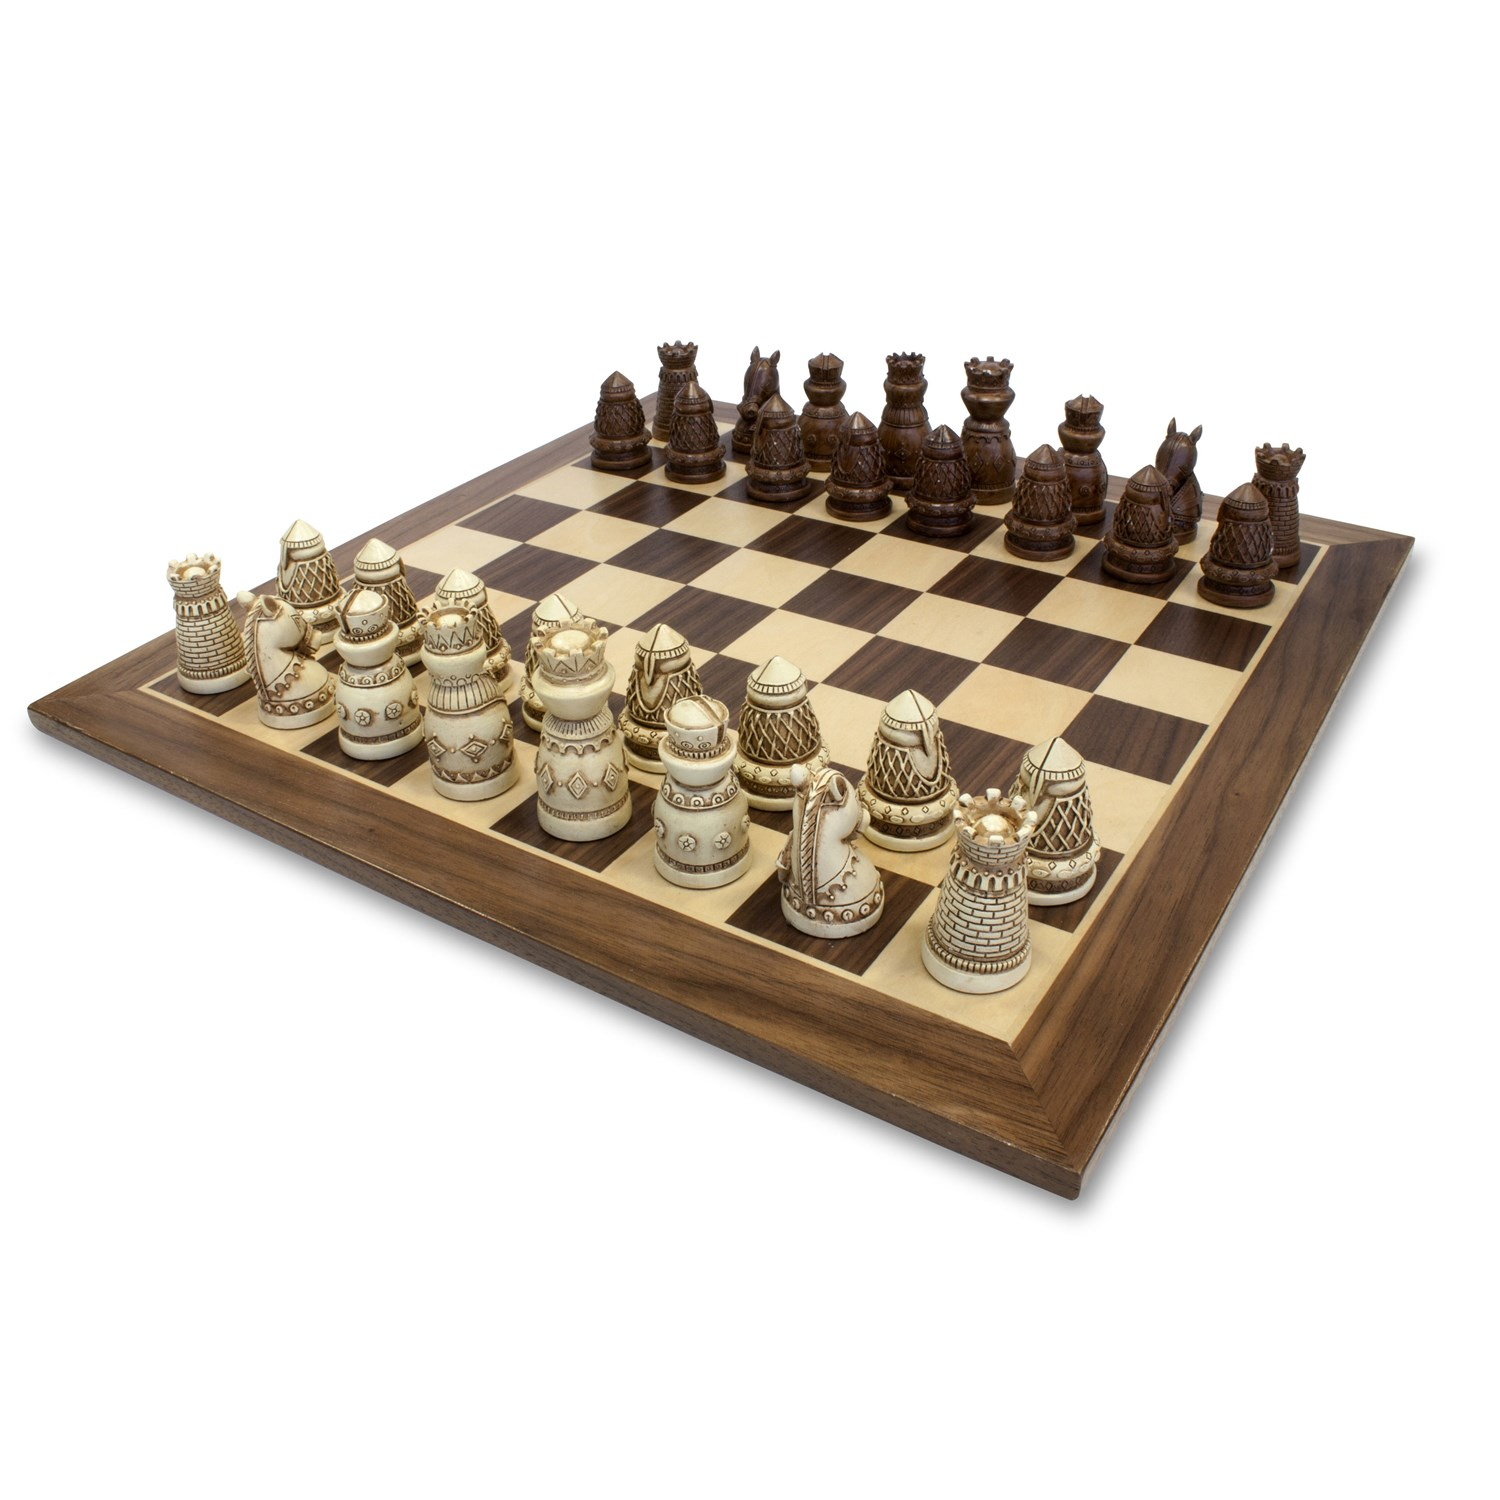 Medieval Chess Set (15 Inches)